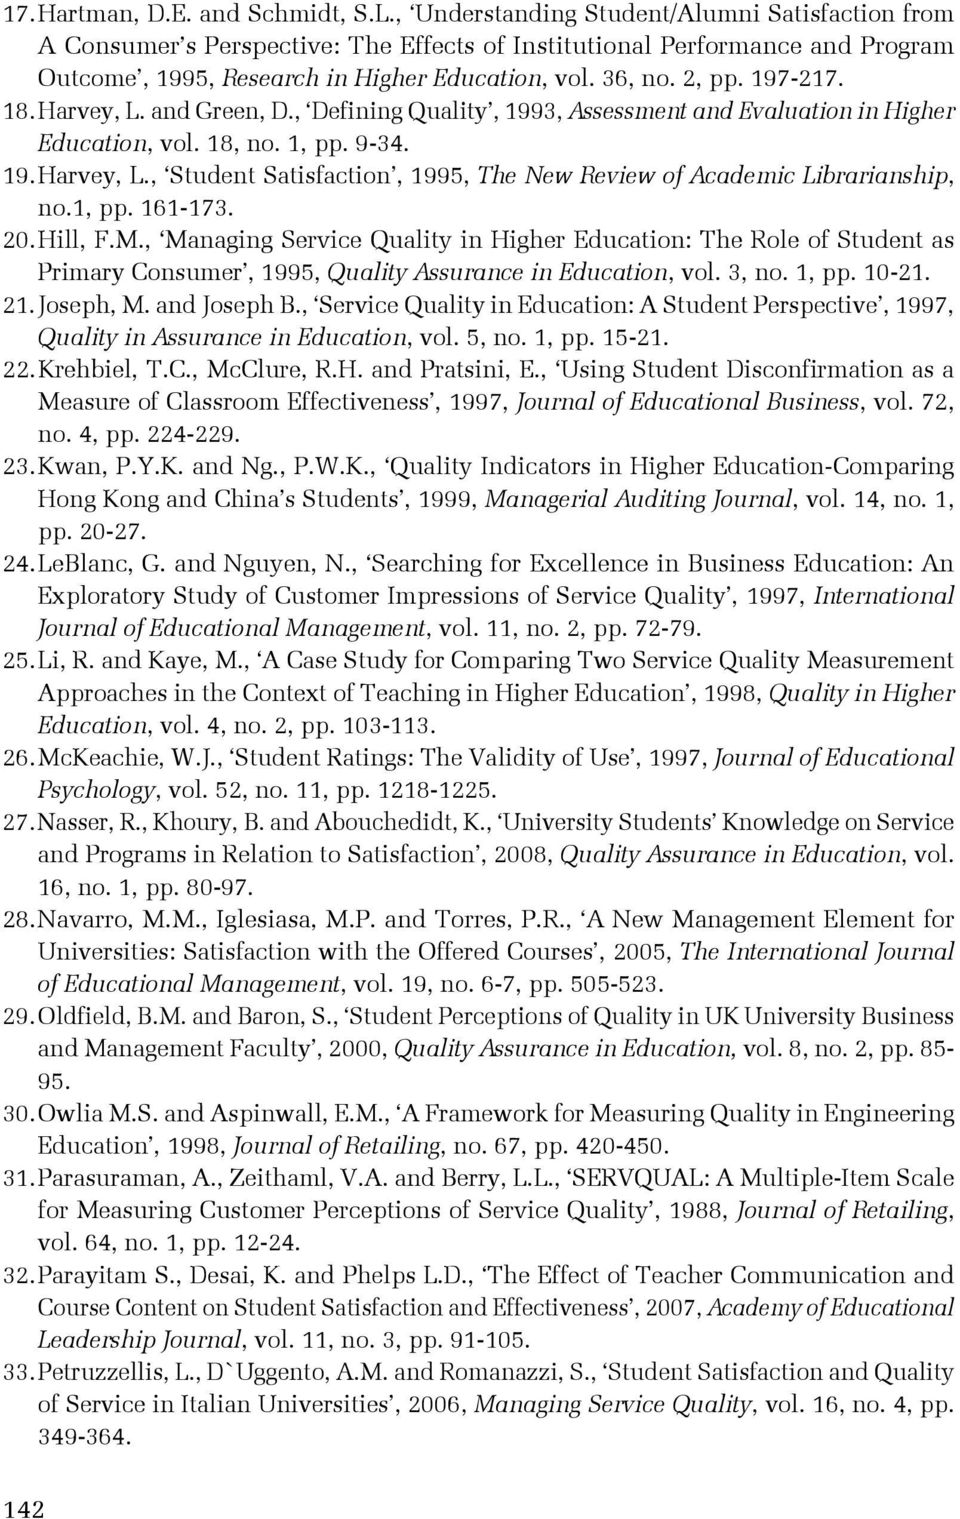 197-217. 18. Harvey, L. and Green, D., Defining Quality, 1993, Assessment and Evaluation in Higher Education, vol. 18, no. 1, pp. 9-34. 19. Harvey, L., Student Satisfaction, 1995, The New Review of Academic Librarianship, no.